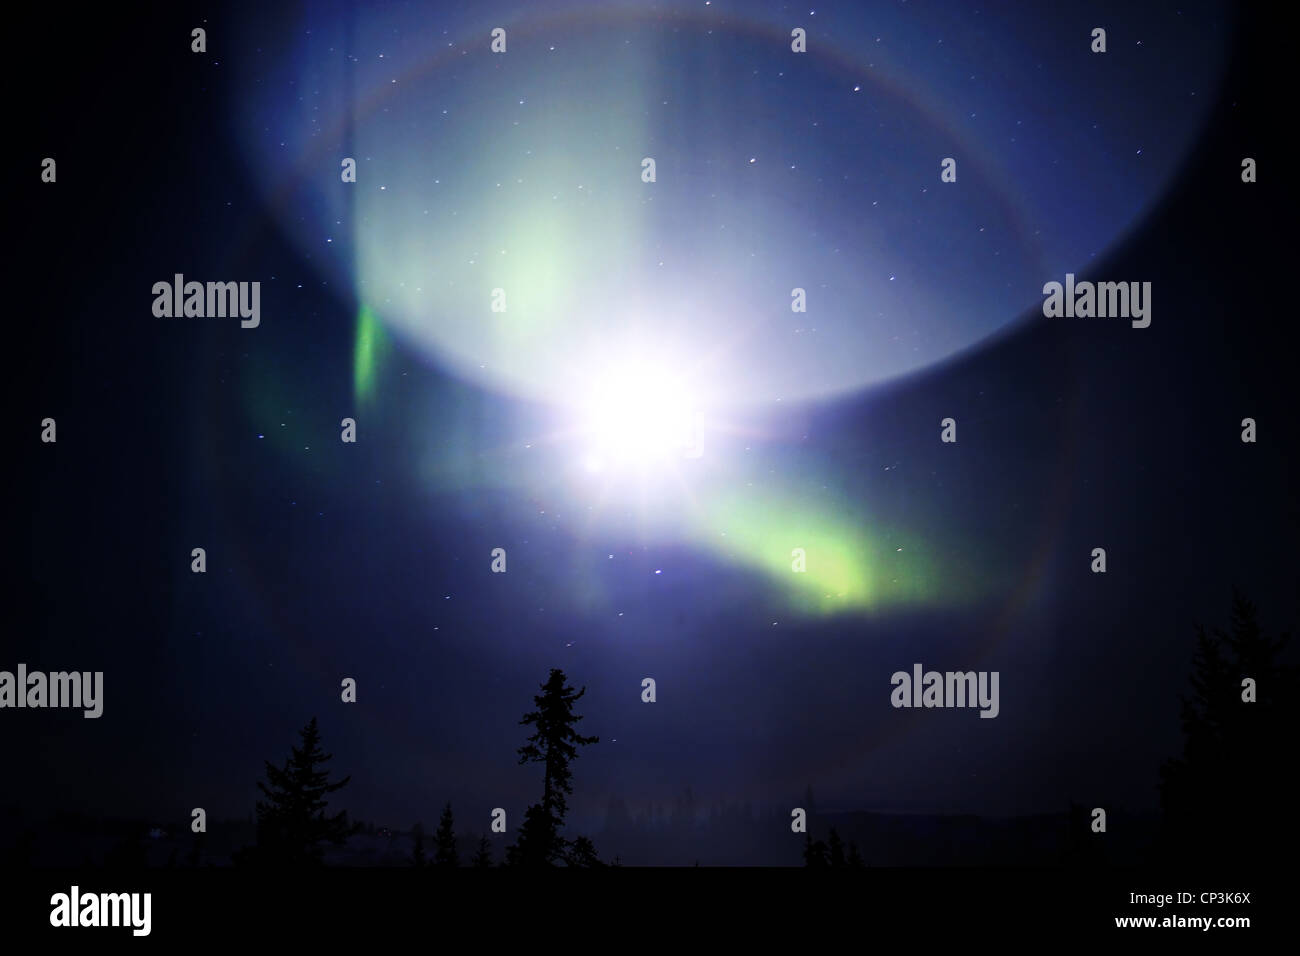 Strange phenomenon in in the sky with a science fiction look created by layering photos. - Stock Image